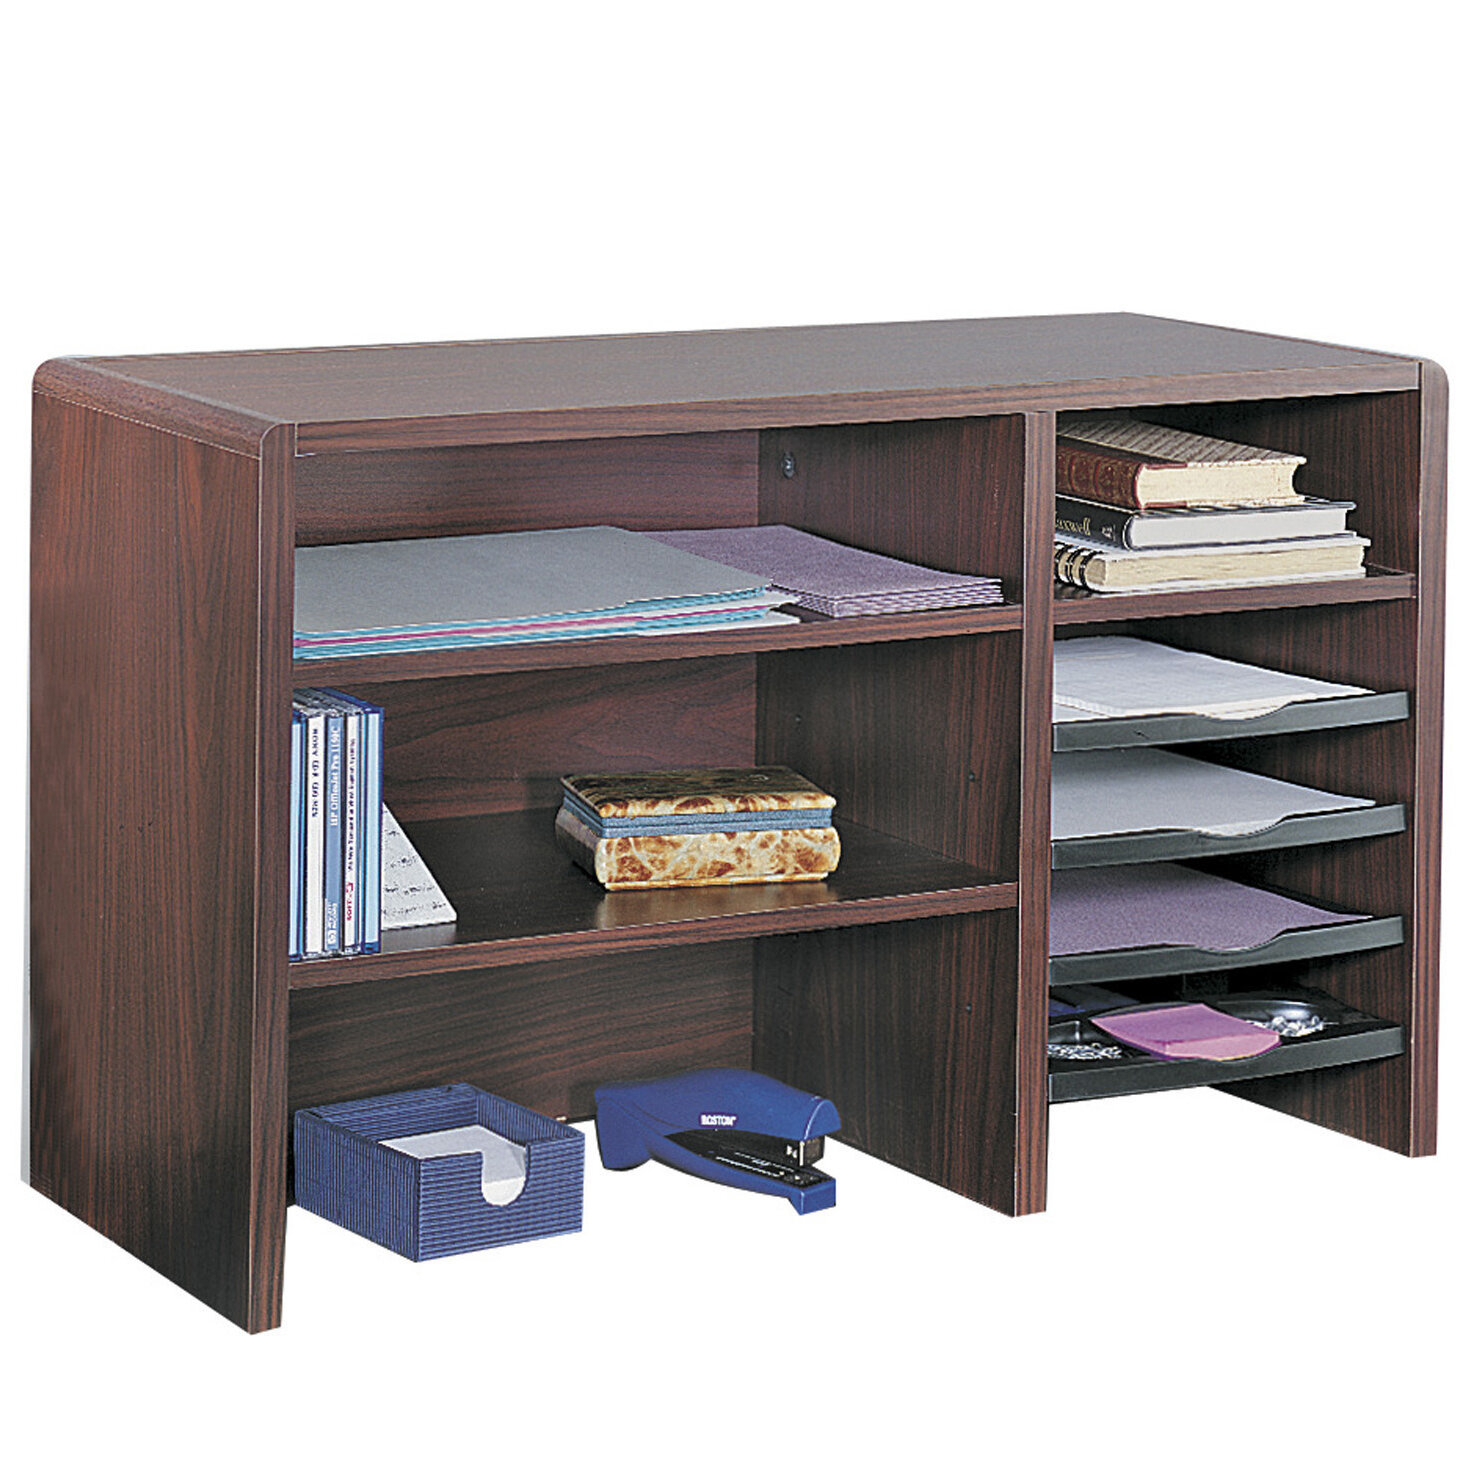 organizers products bamboo shelf tier international lipper organizer desk